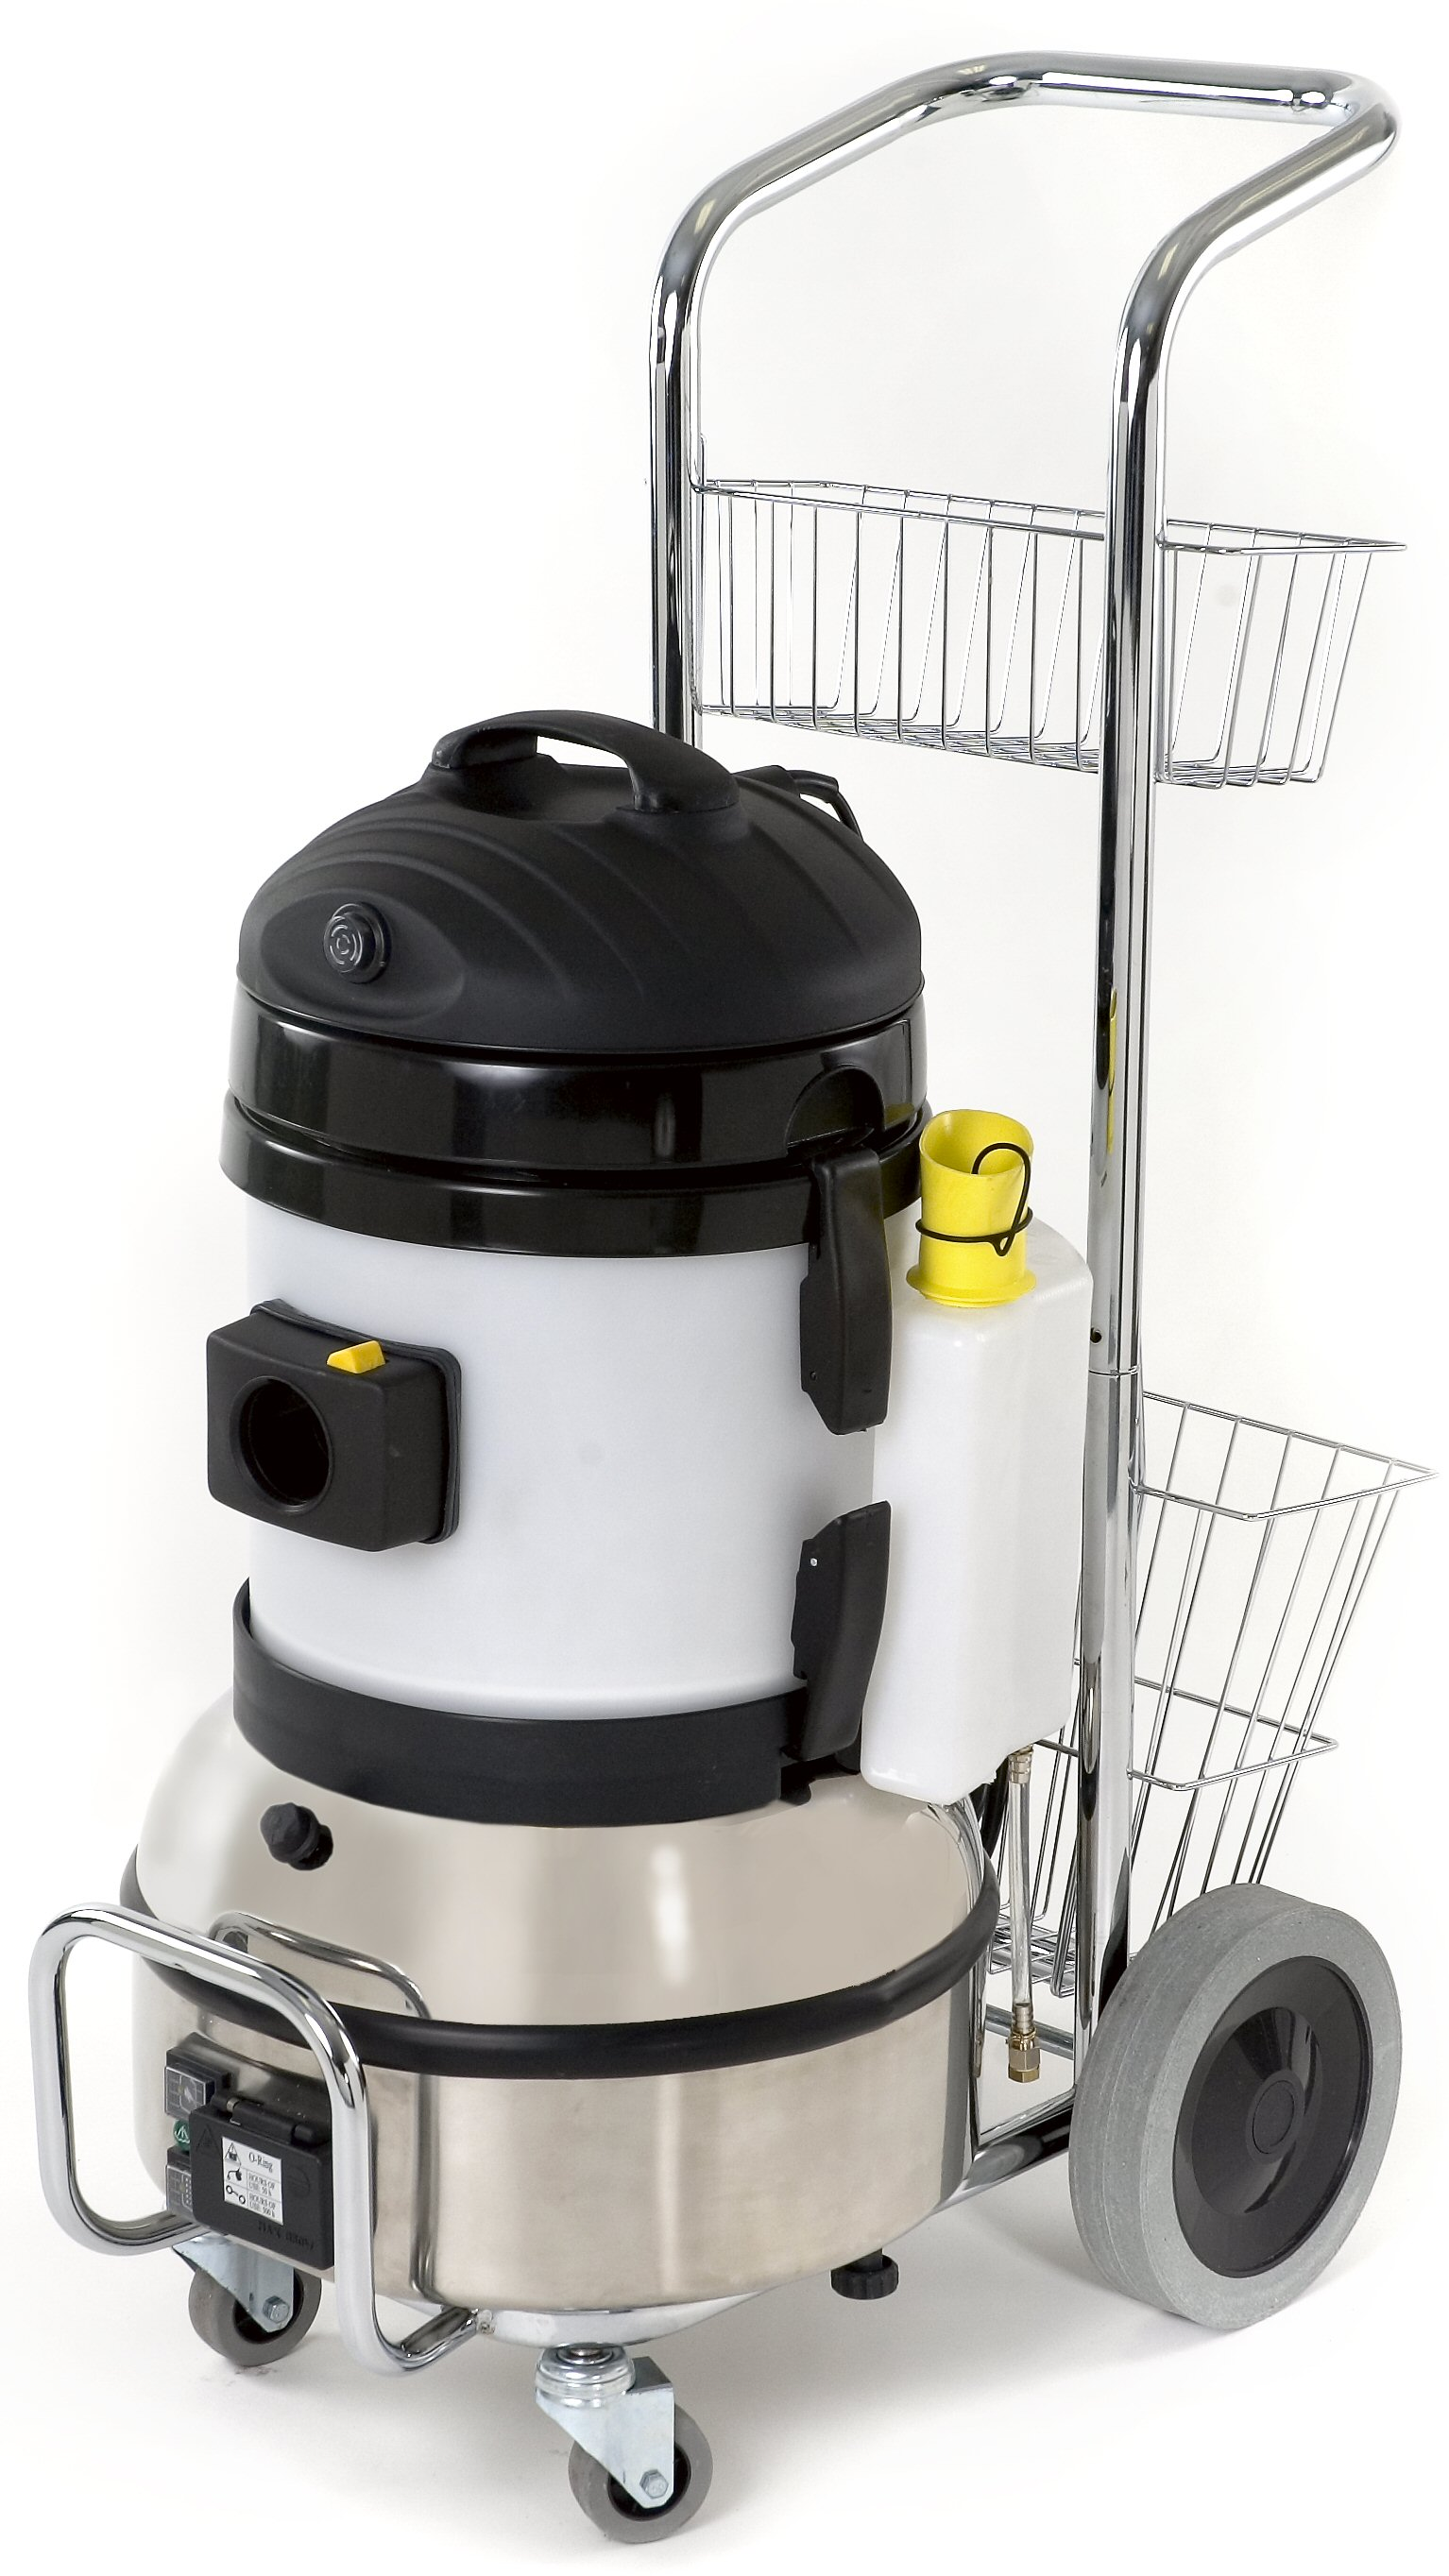 New Industrial Steam Cleaners From Daimer 174 Bundle Wet Dry